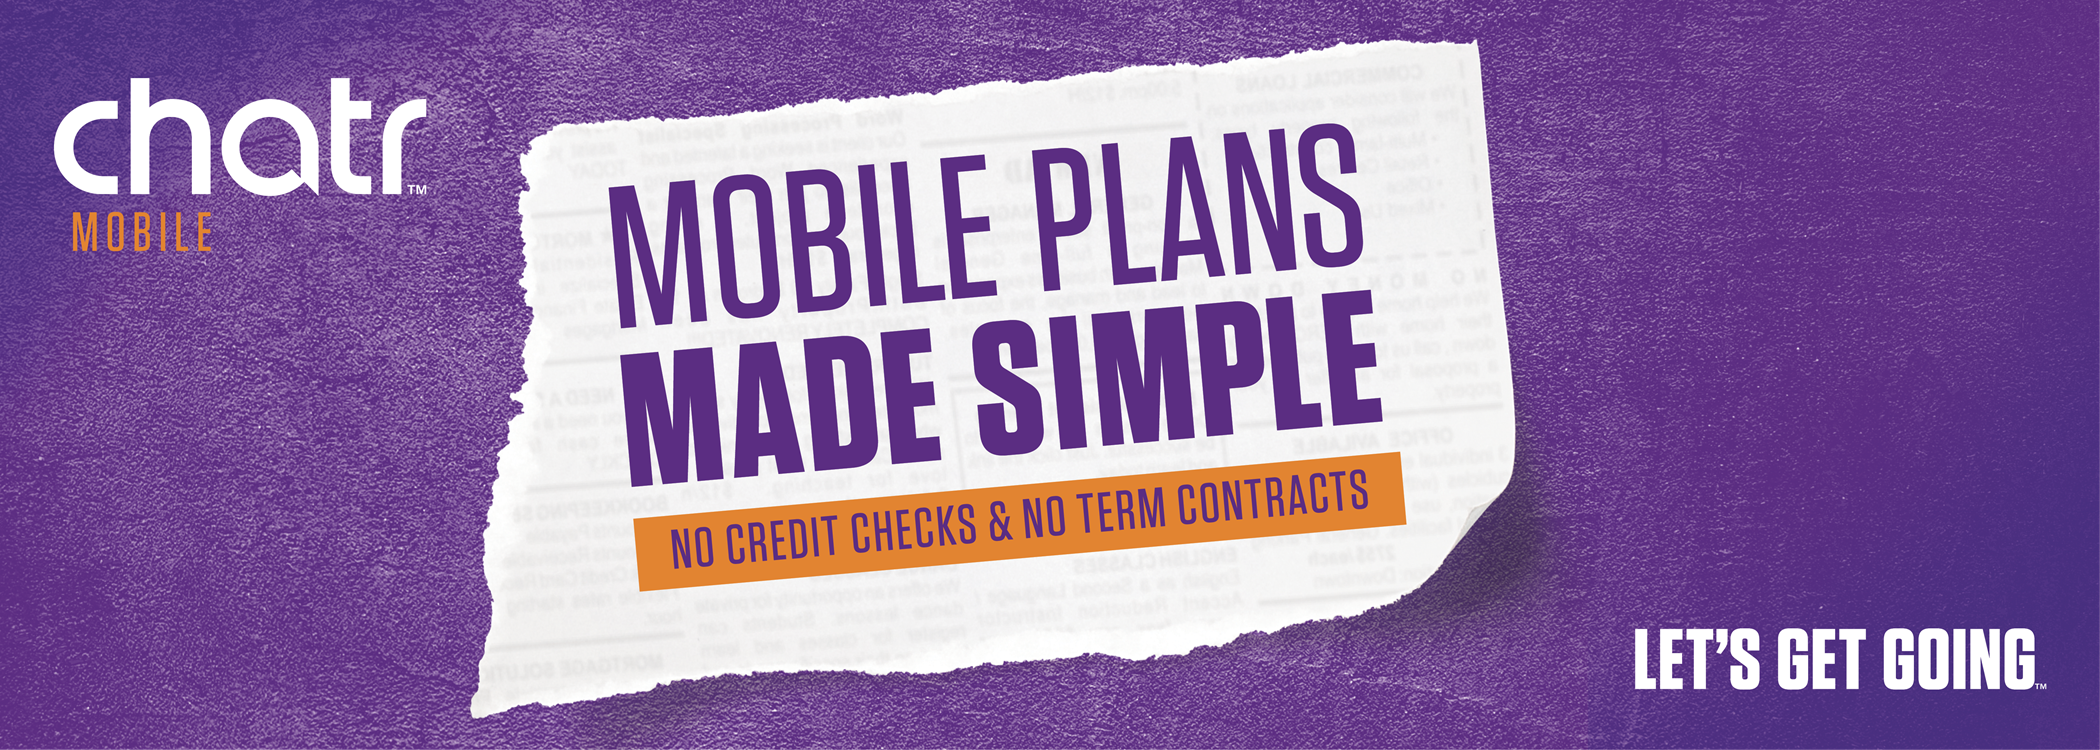 Mobile plans made simple from chatr mobile